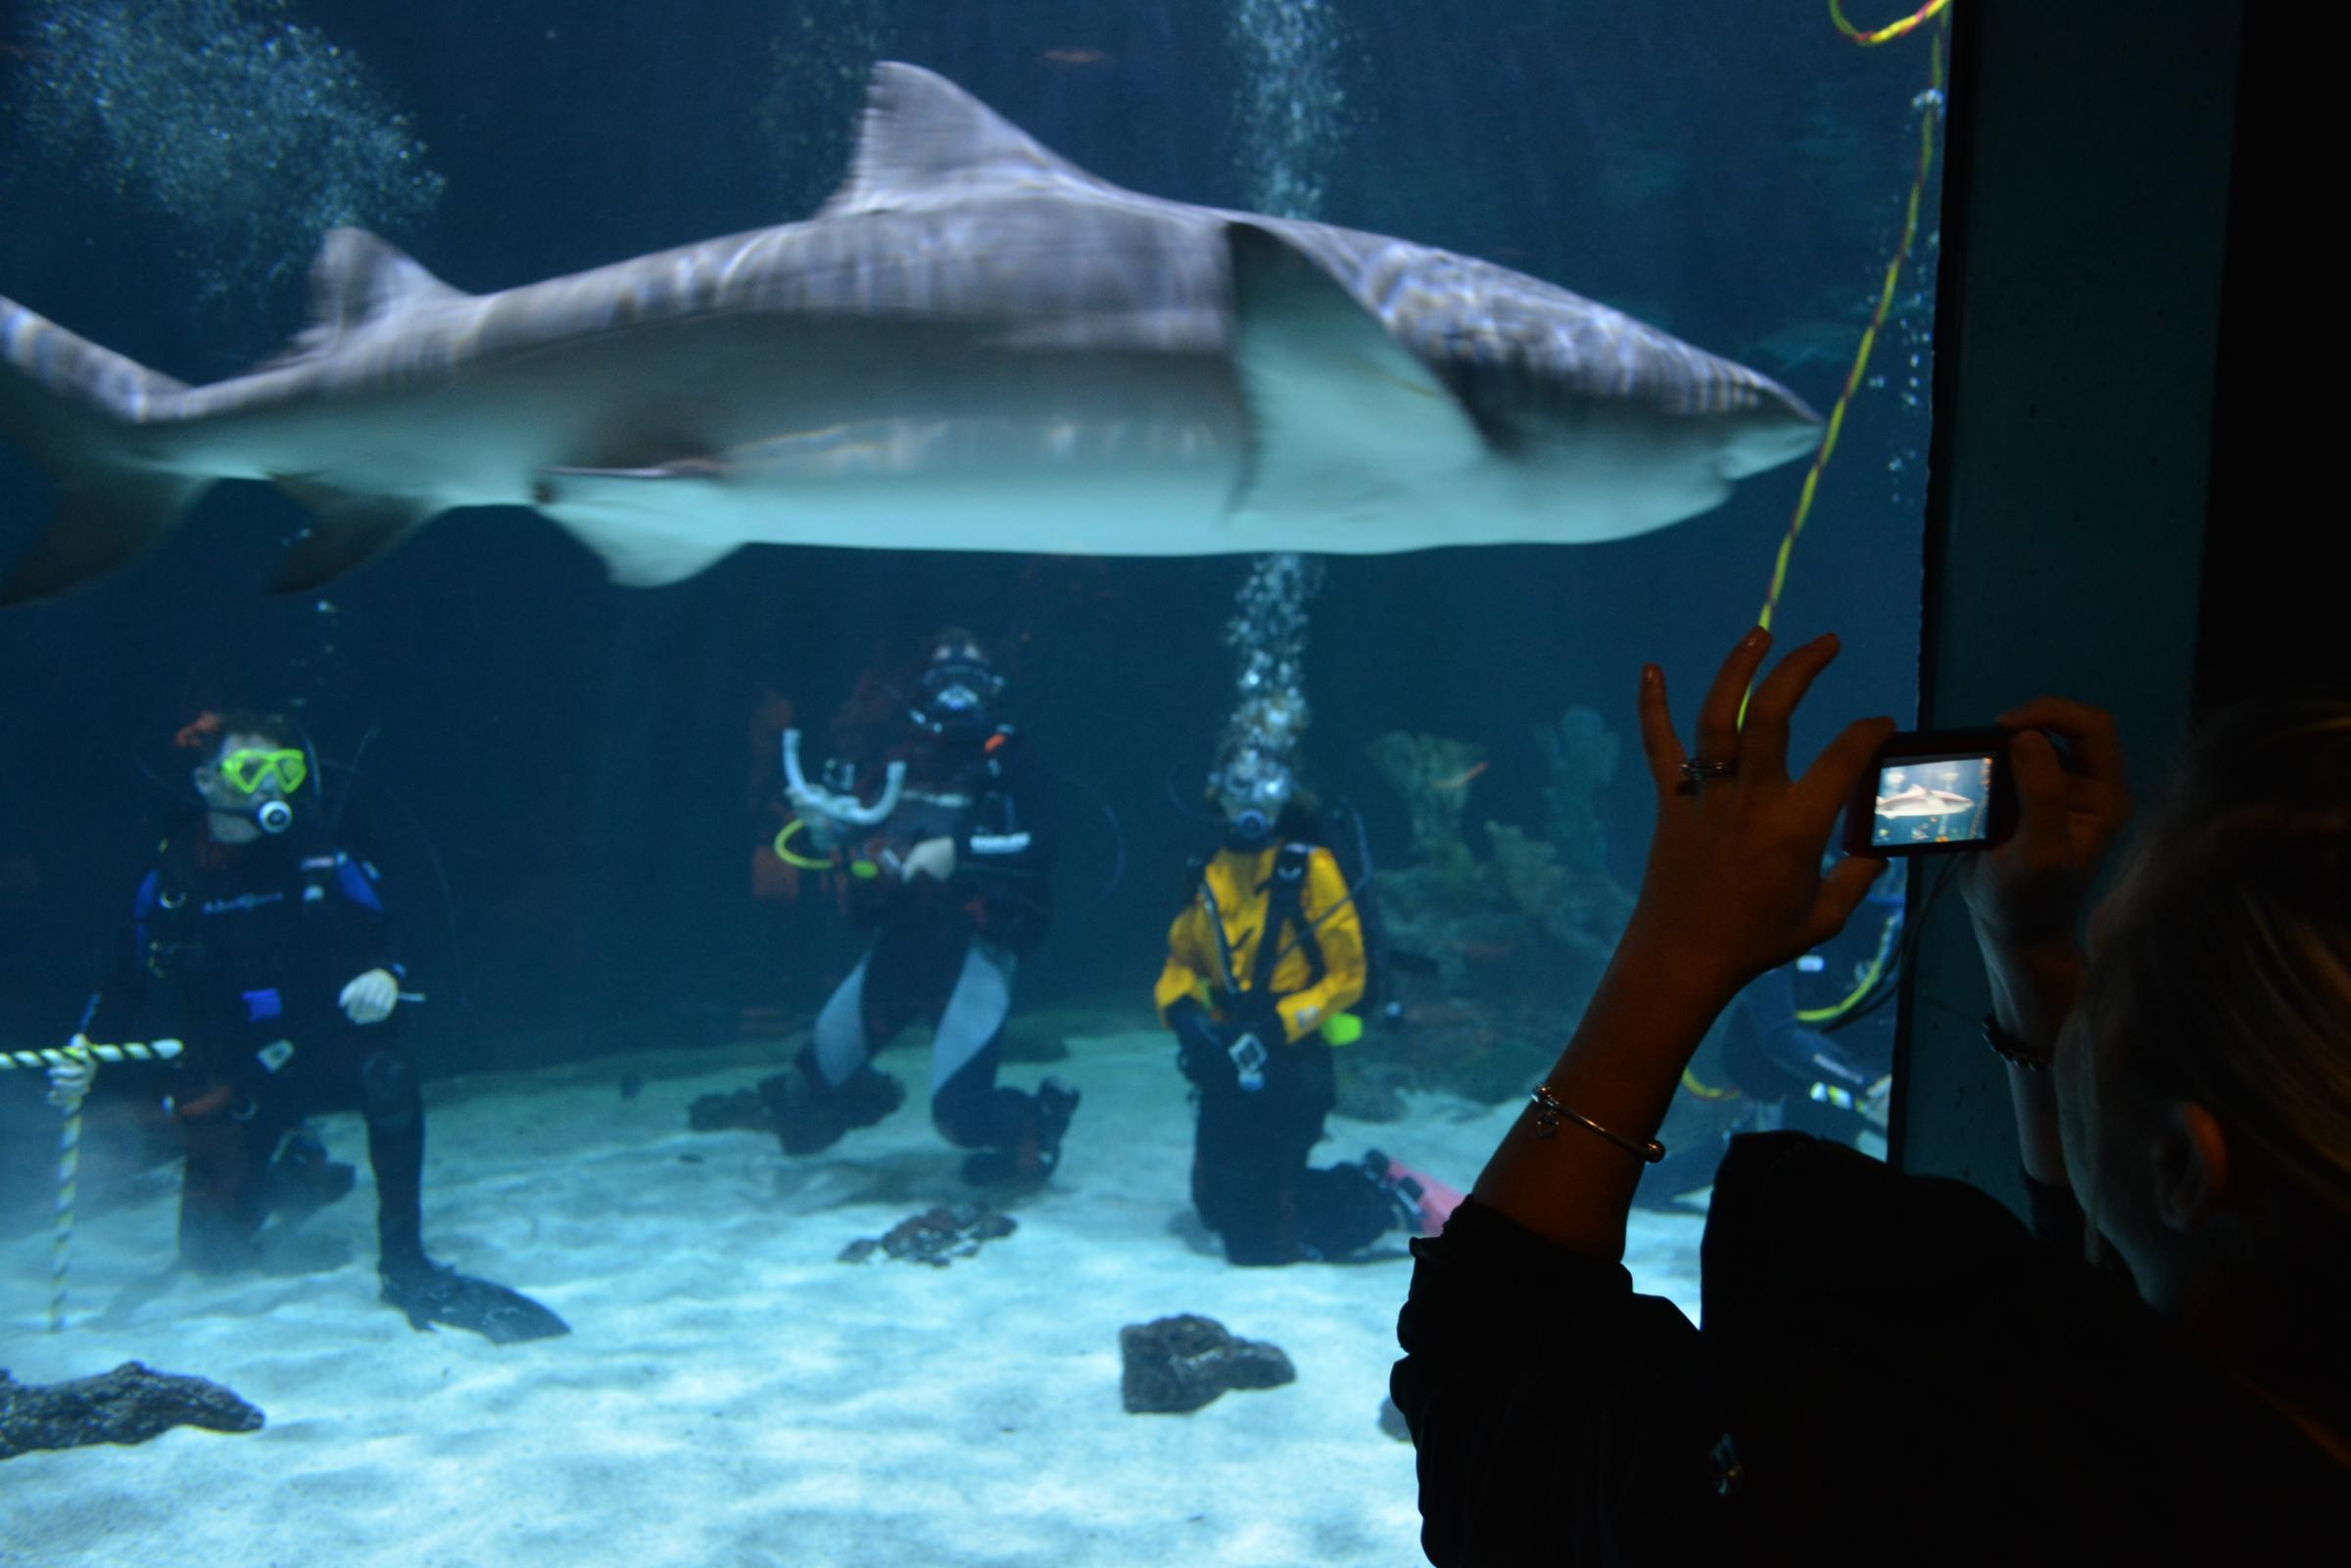 Fish tank sharks -  Aquarium In Tacoma To Let Visitors Dive In Shark Tank Northwest